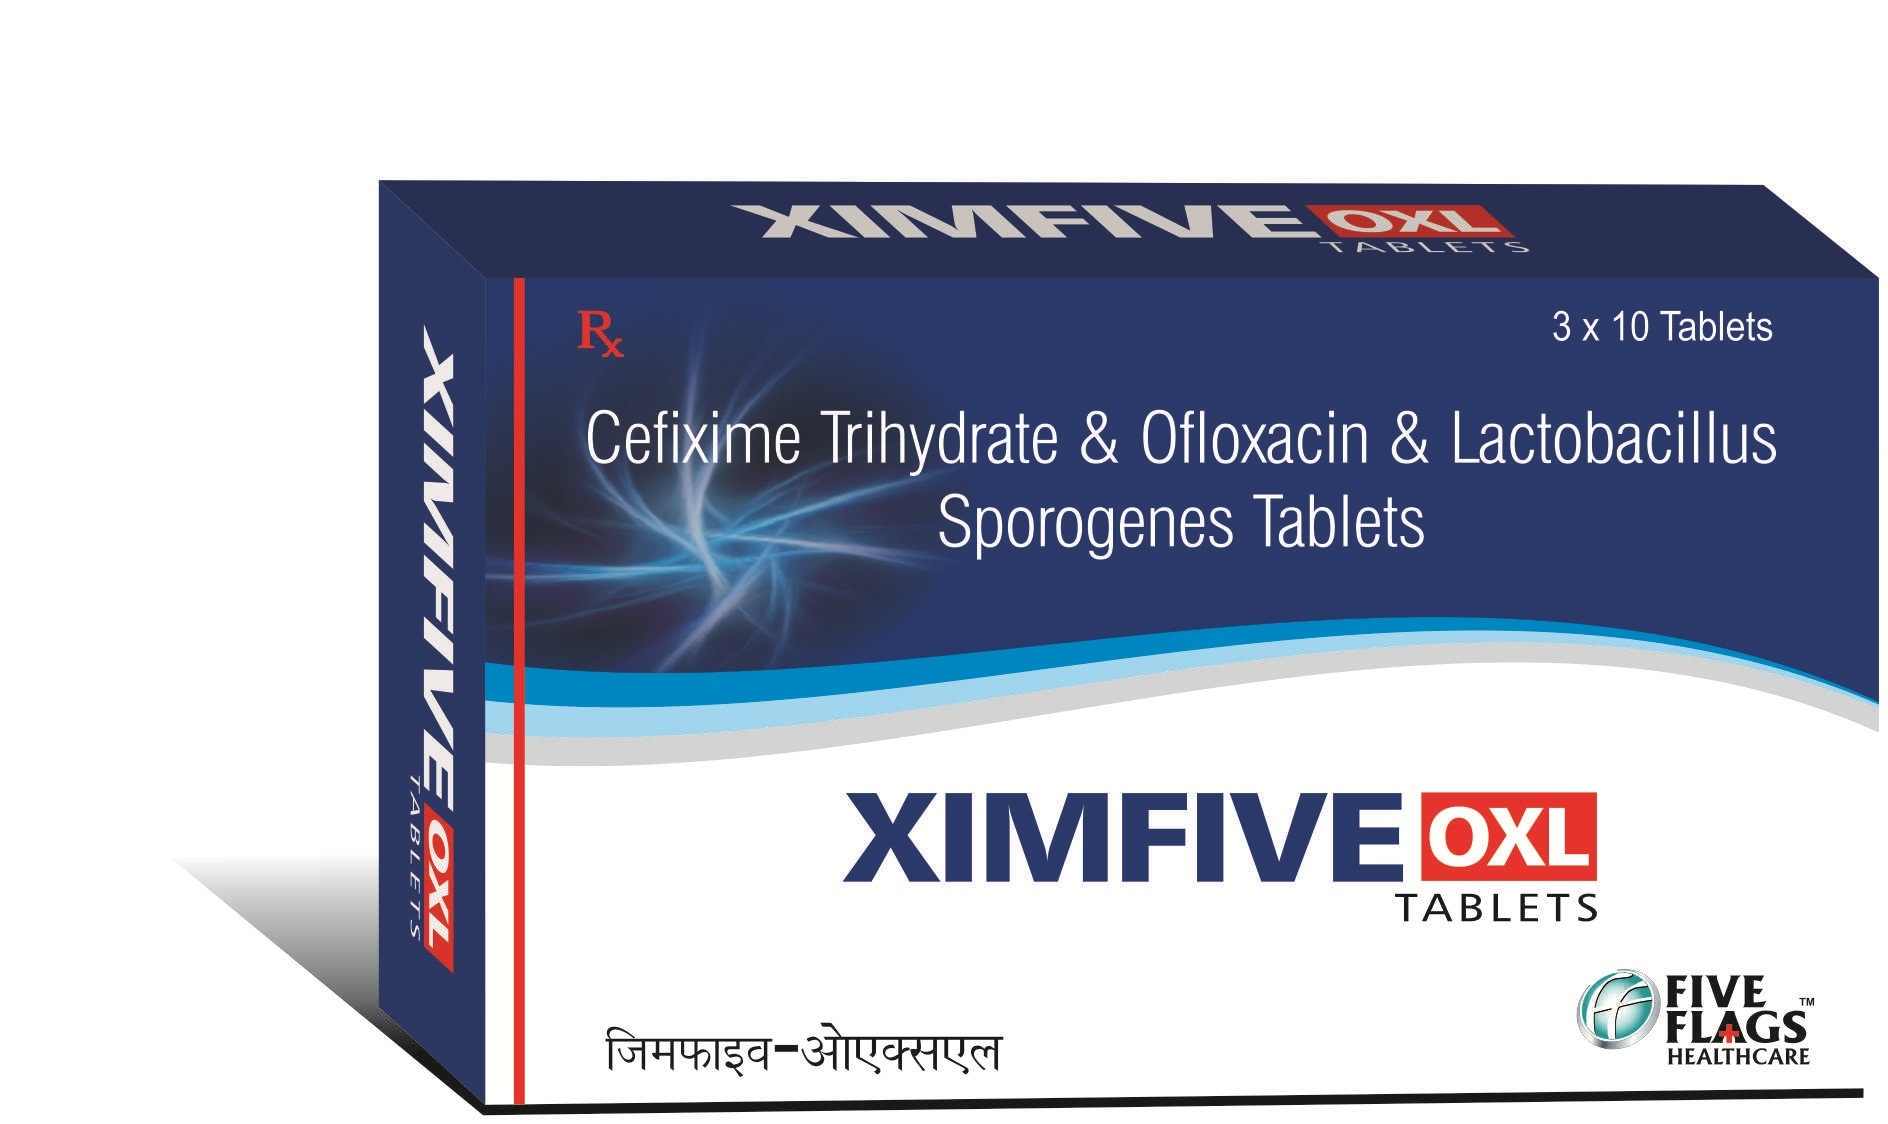 XIMFIVE-OLX TABLETS